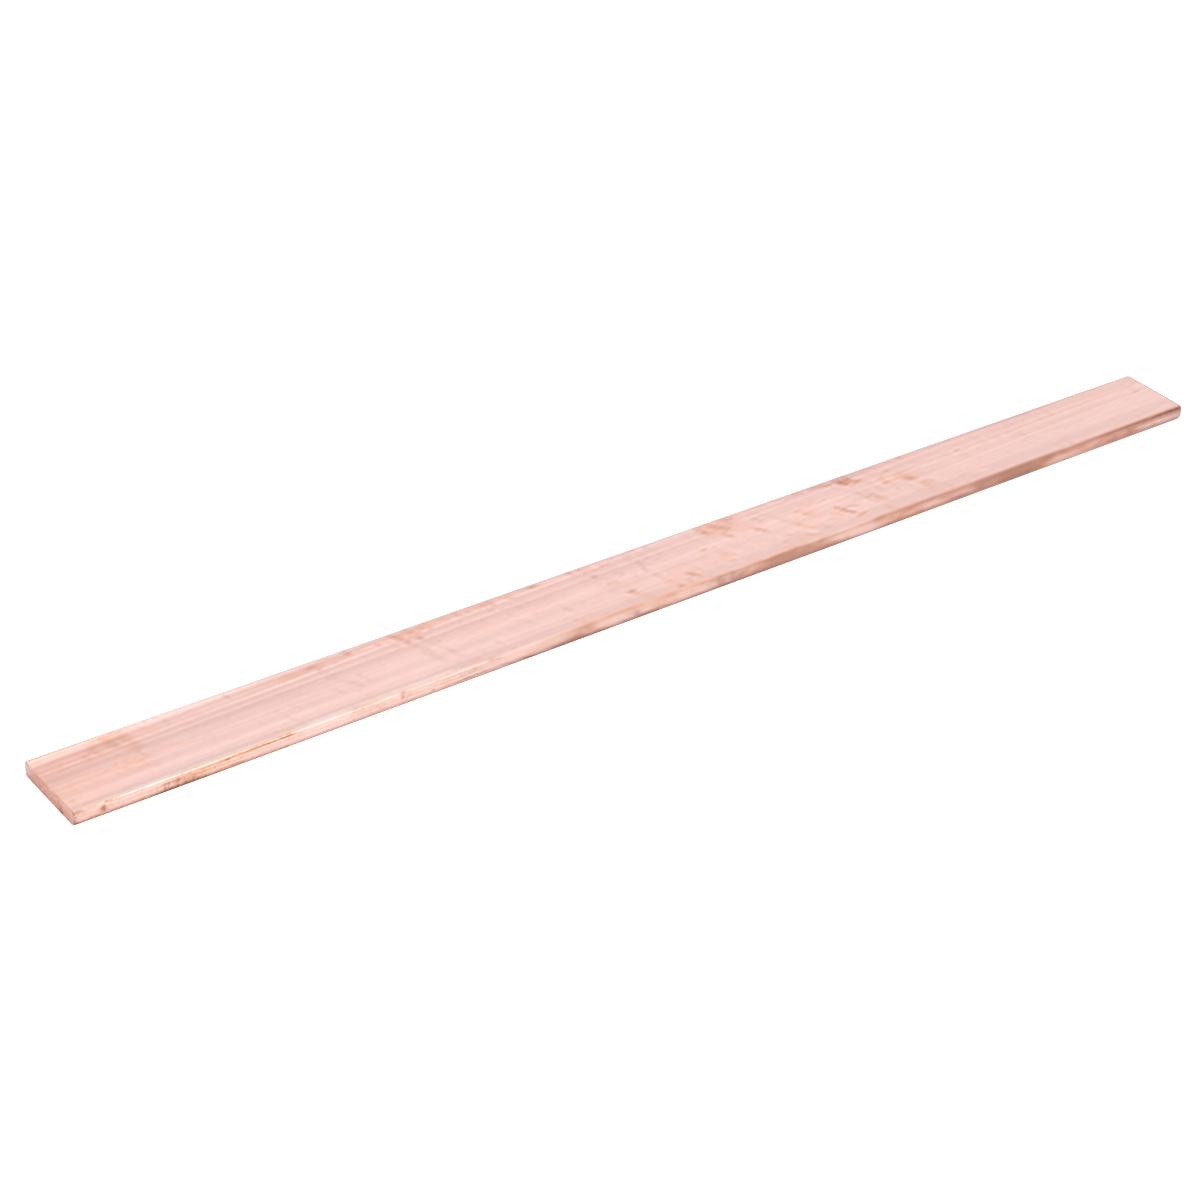 1pcs 99/% Copper T2 Cu Metal Flat Bar Plate 5mm x 25mm x 100mm